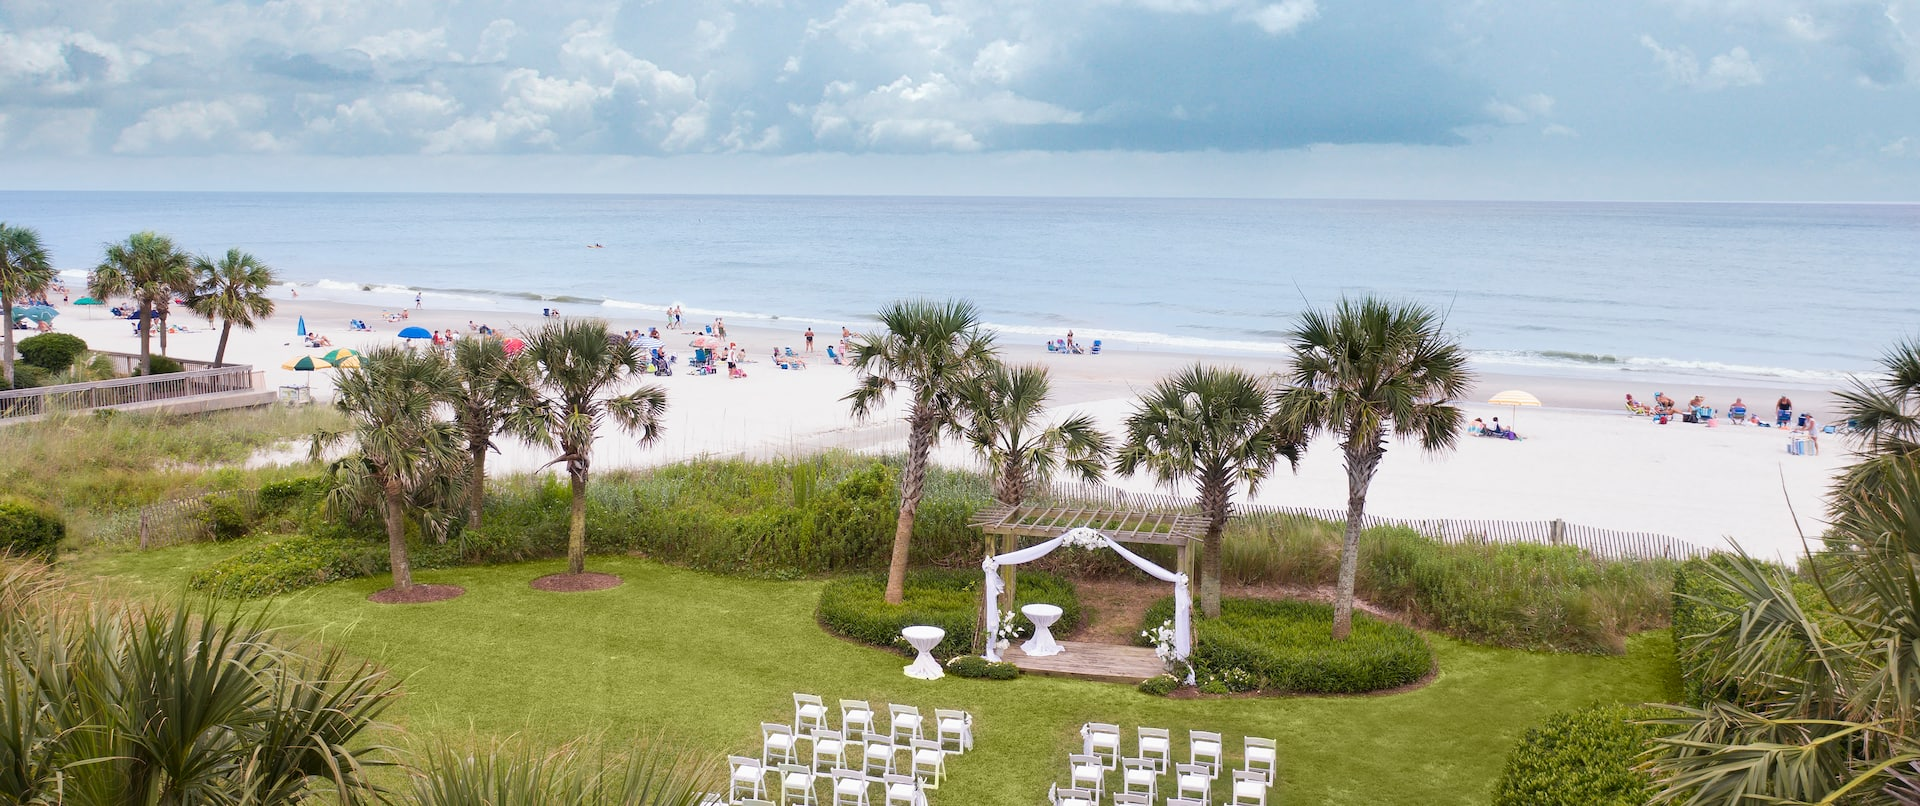 Outdoor Wedding Venue on Lawn with Beach View